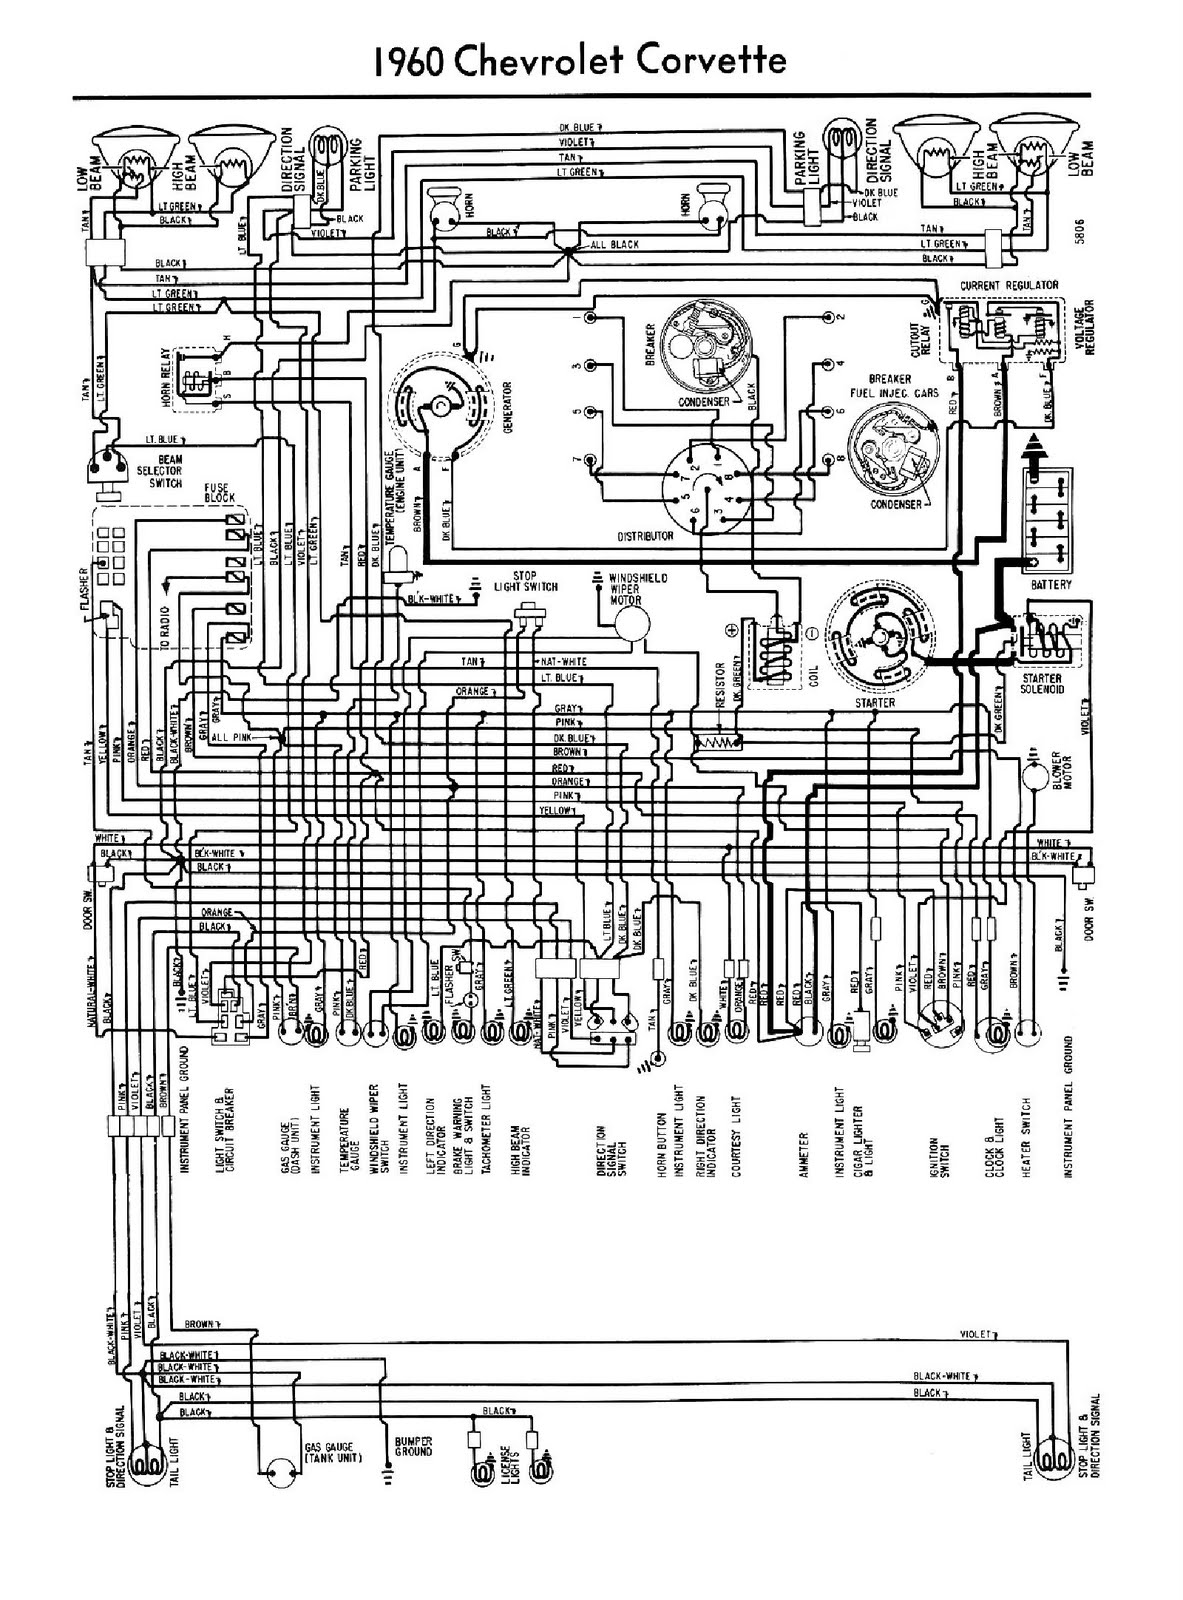 1960 Corvette Wiring Diagram Will Be A Thing 1970 Free Auto Chevrolet 1965 Lighting